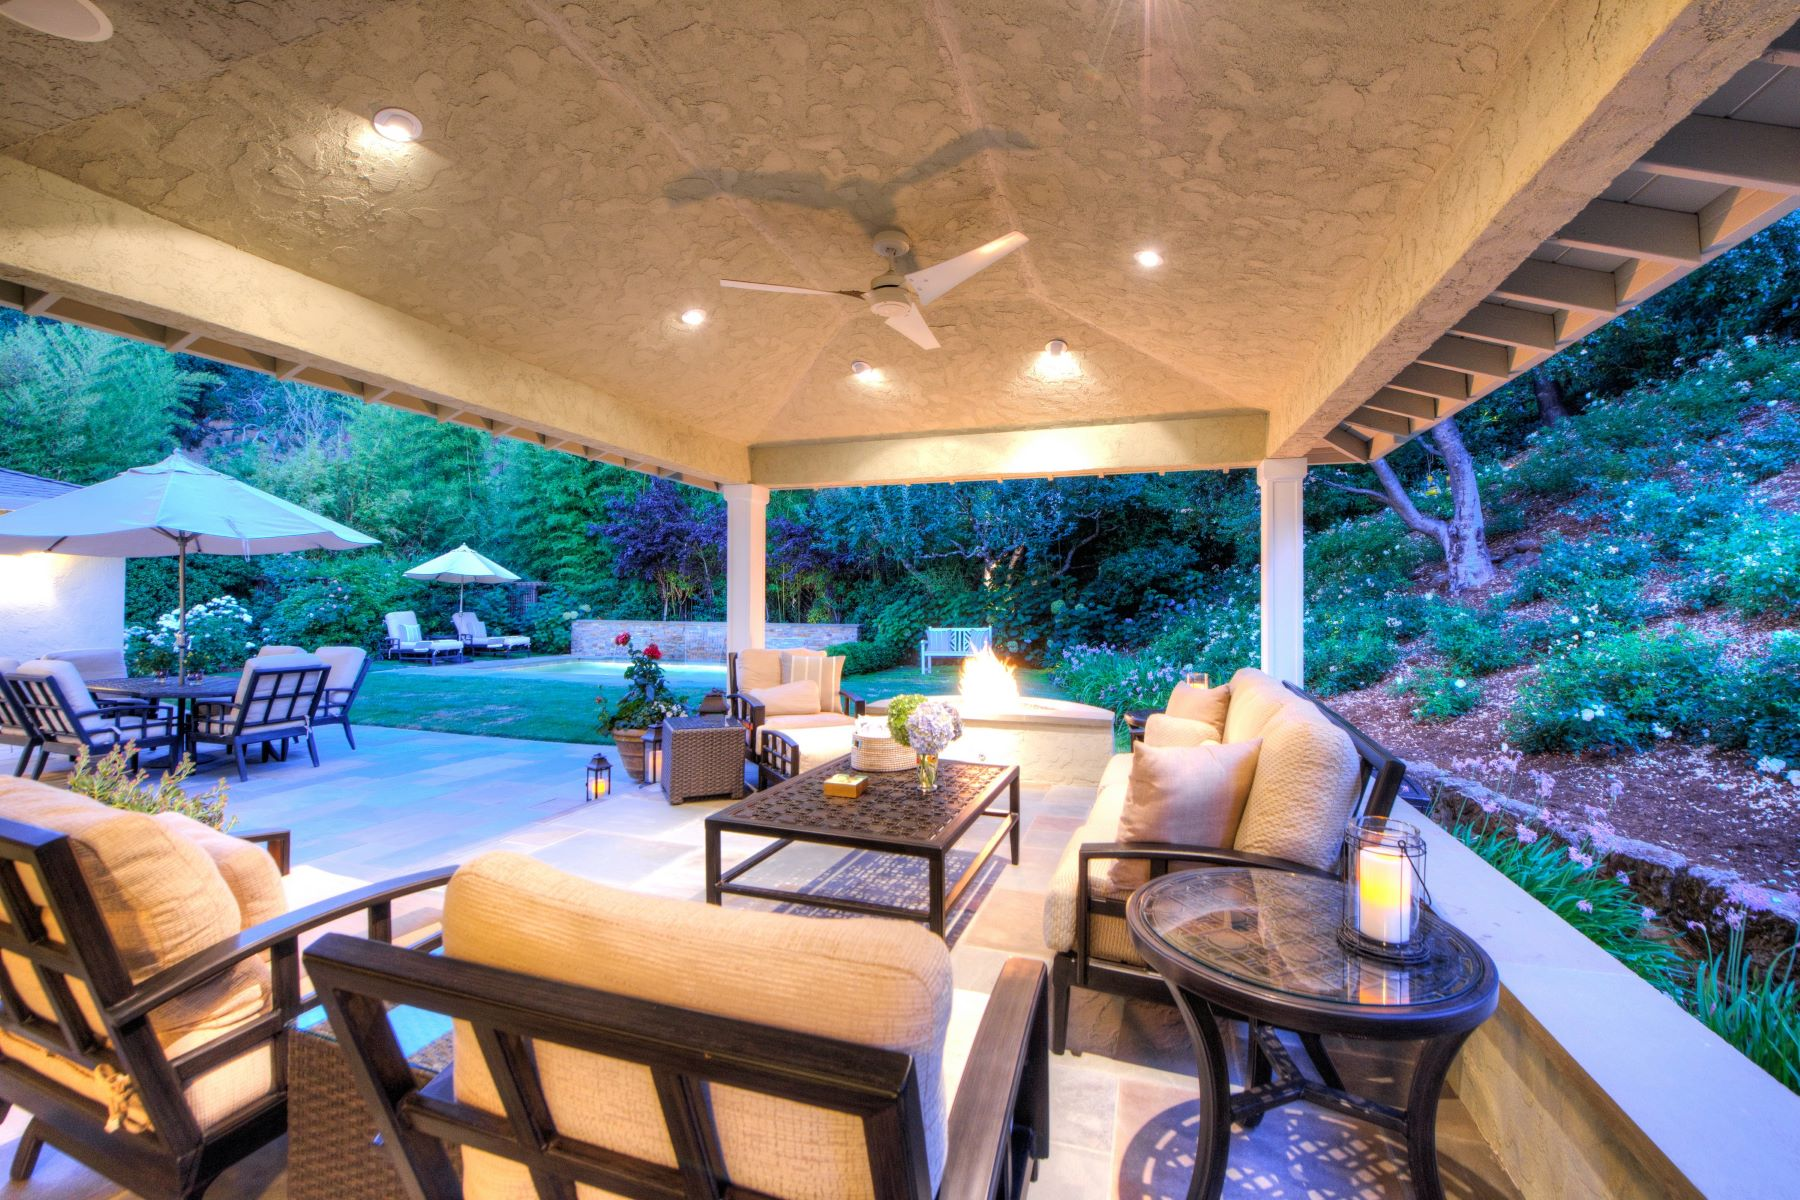 Additional photo for property listing at Spectacular Executive Style Home in Marin Country Club 10 Bonnie Brae Drive Novato, California 94949 United States